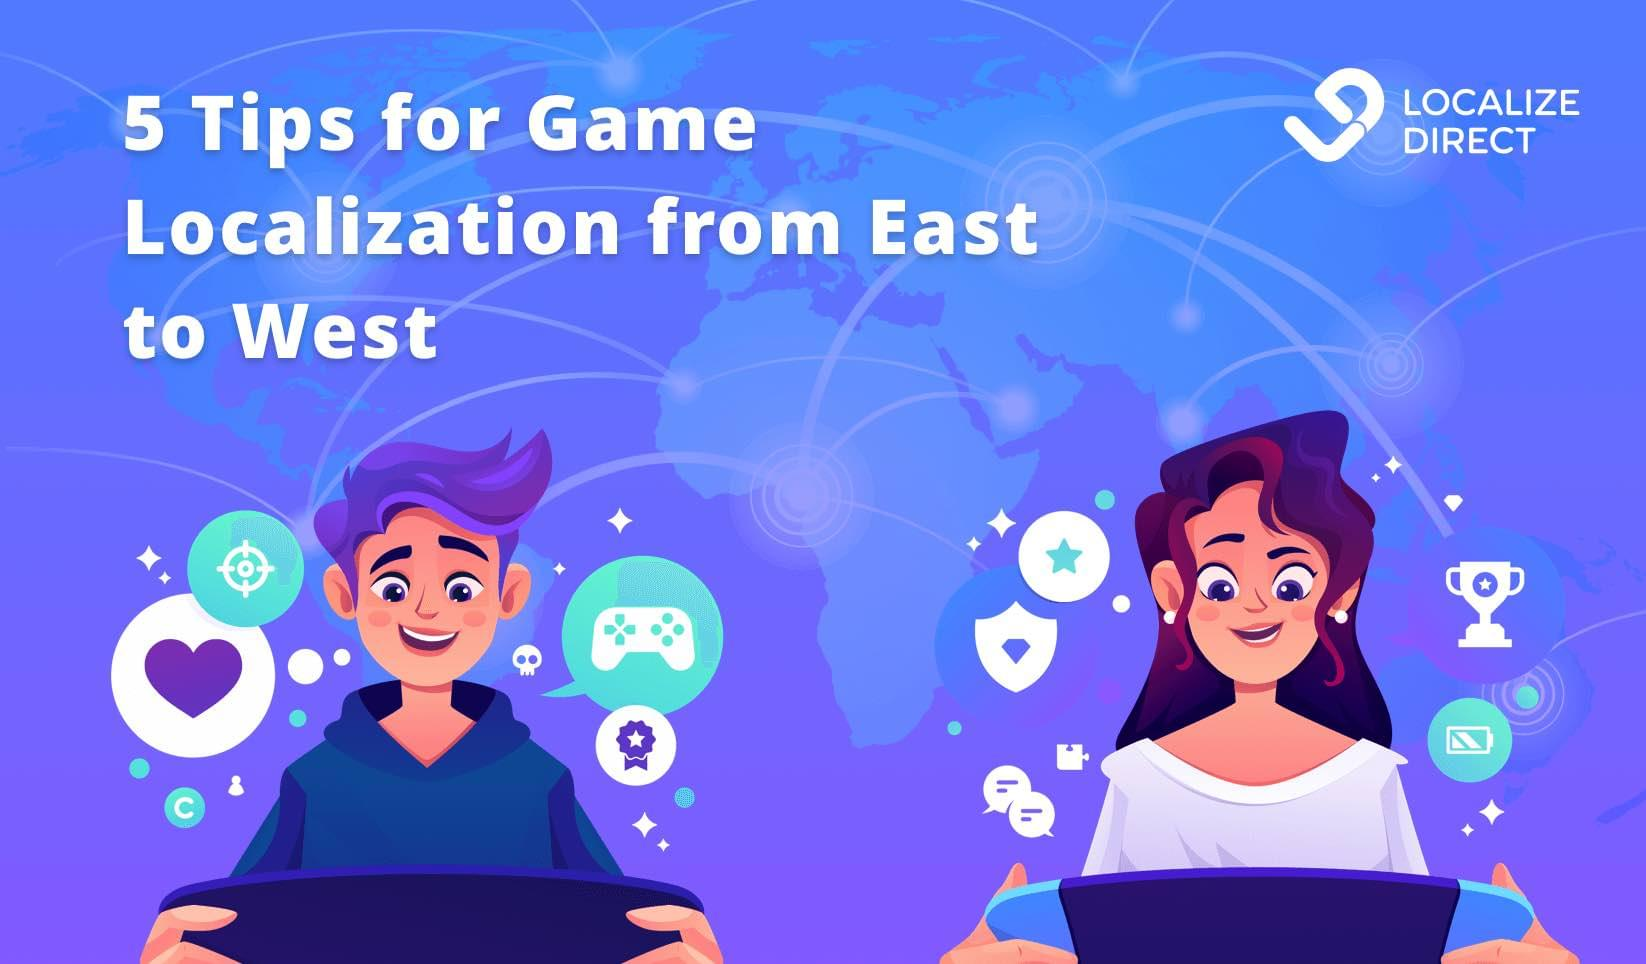 5 Tips for Game Localization from East to West